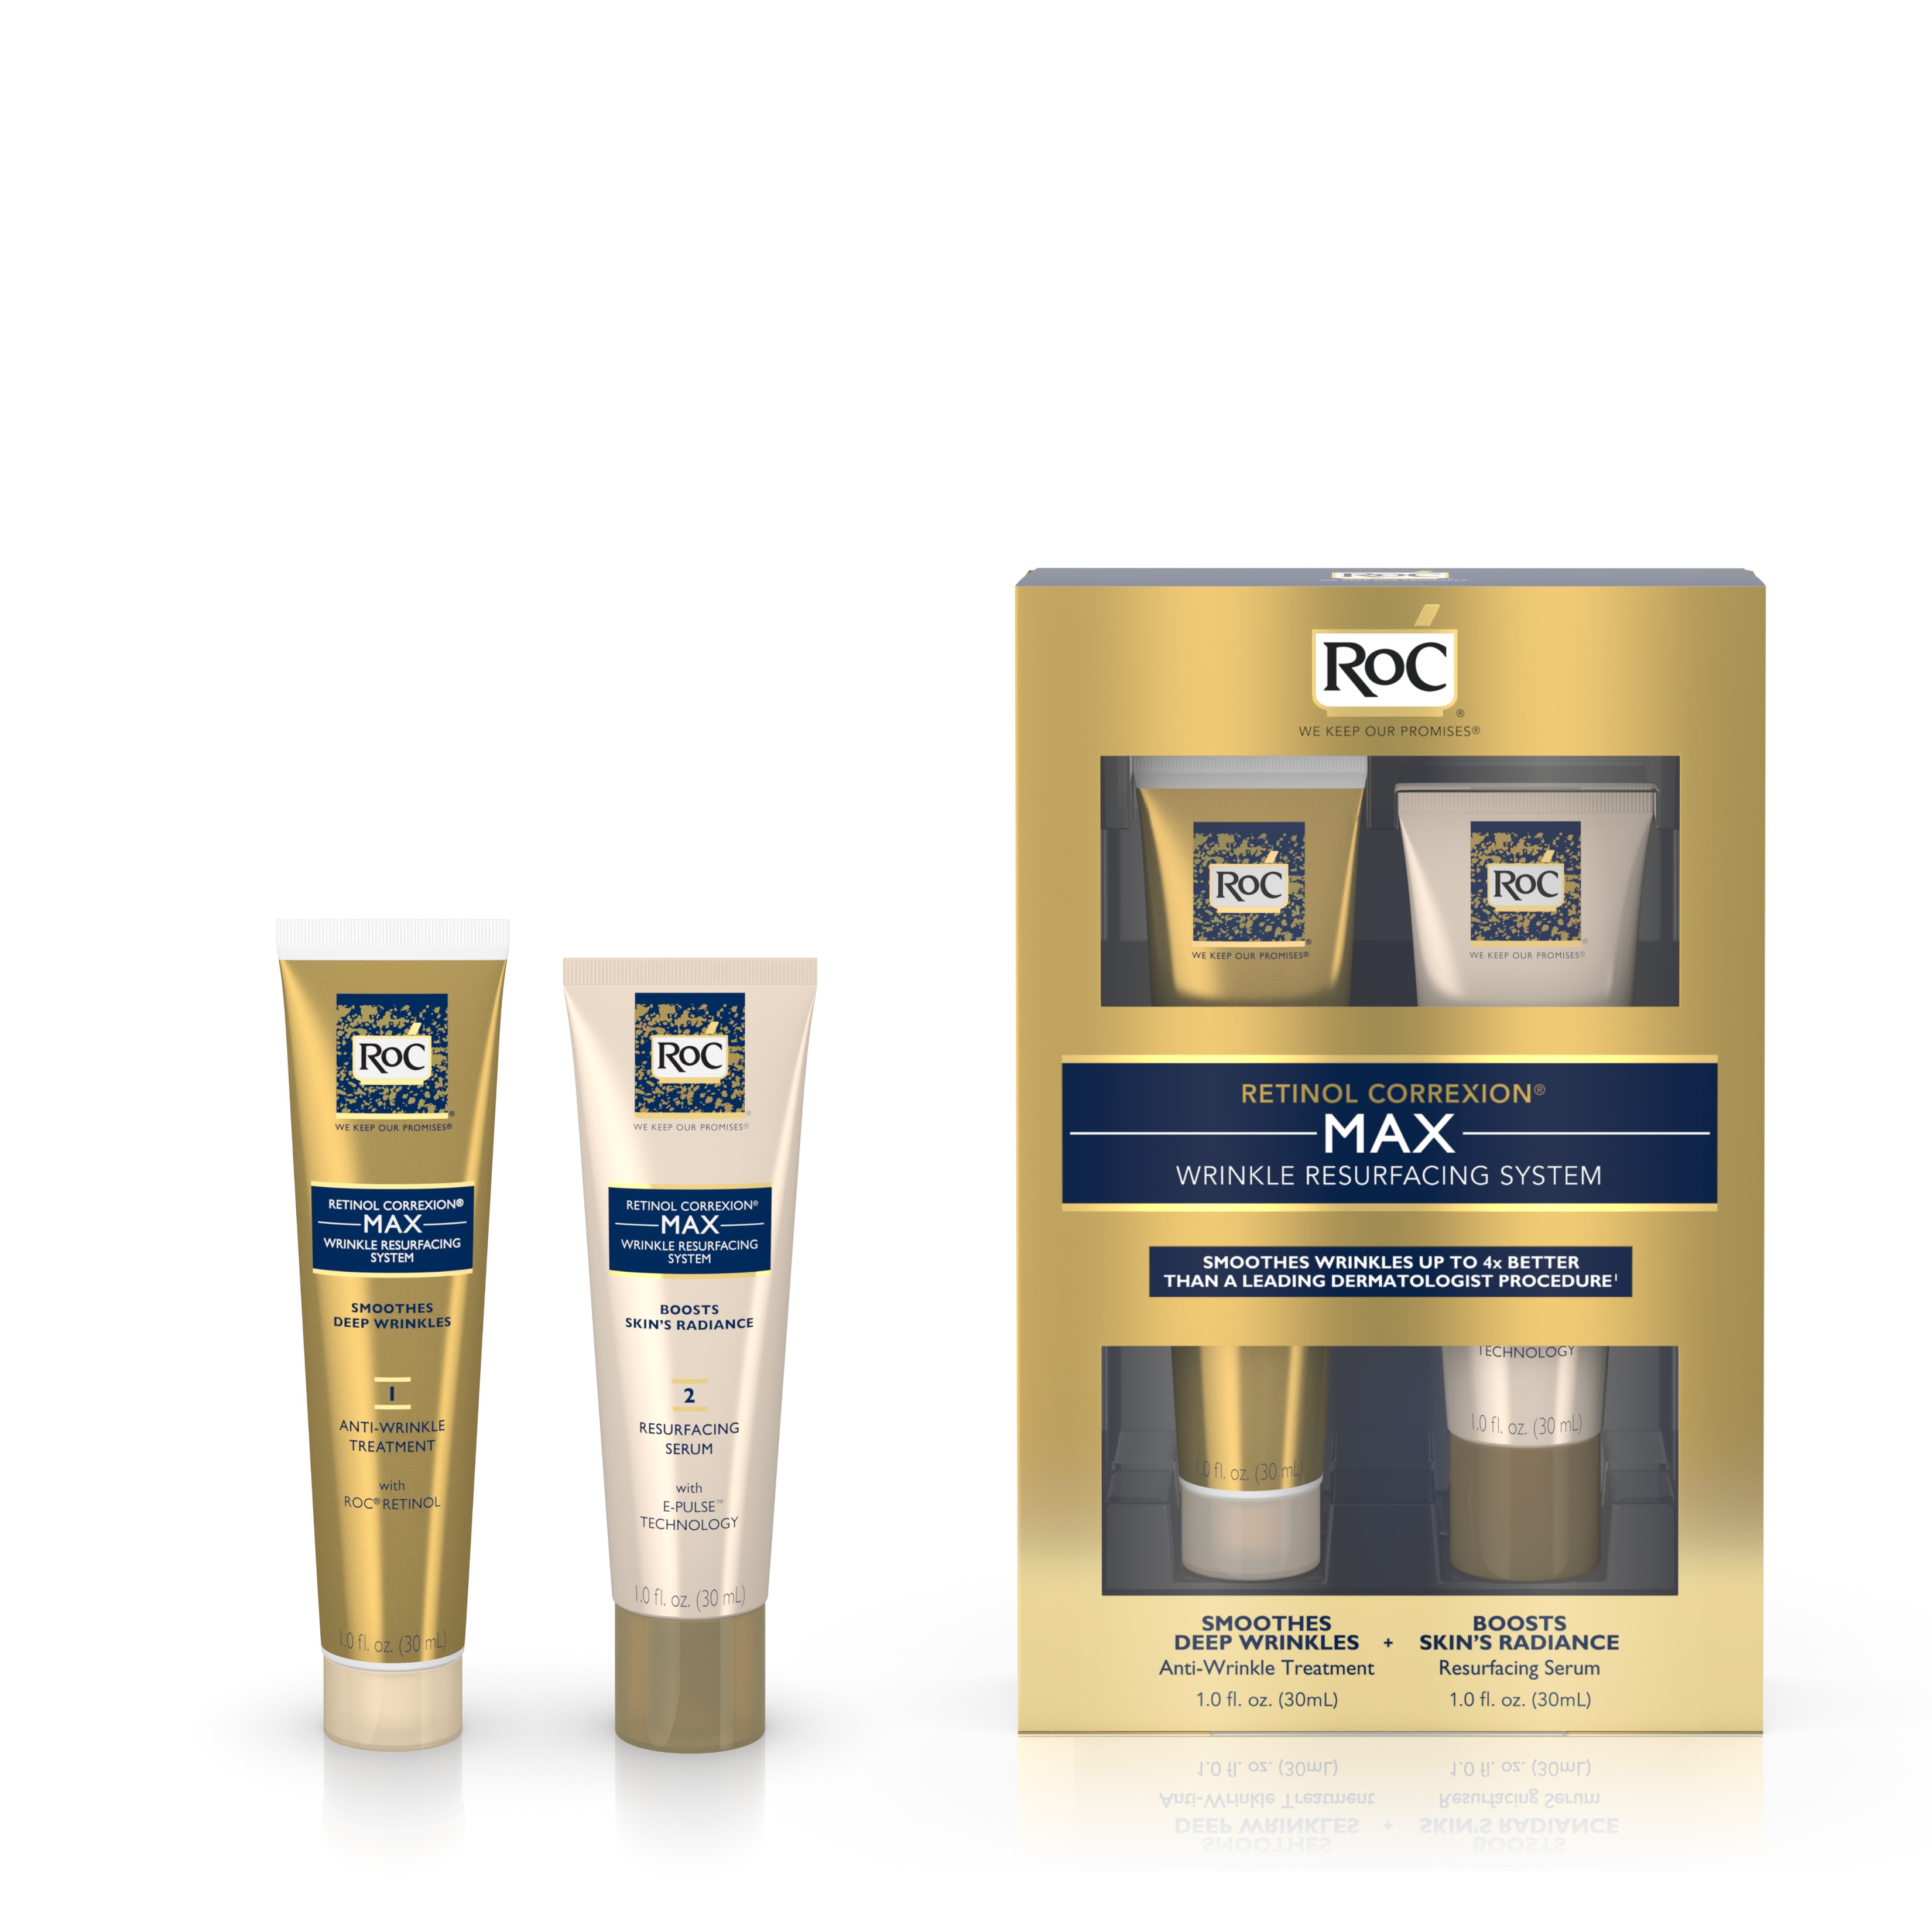 RoC Retinol Correxion Max Anti-Aging Resurfacing System, 2 items